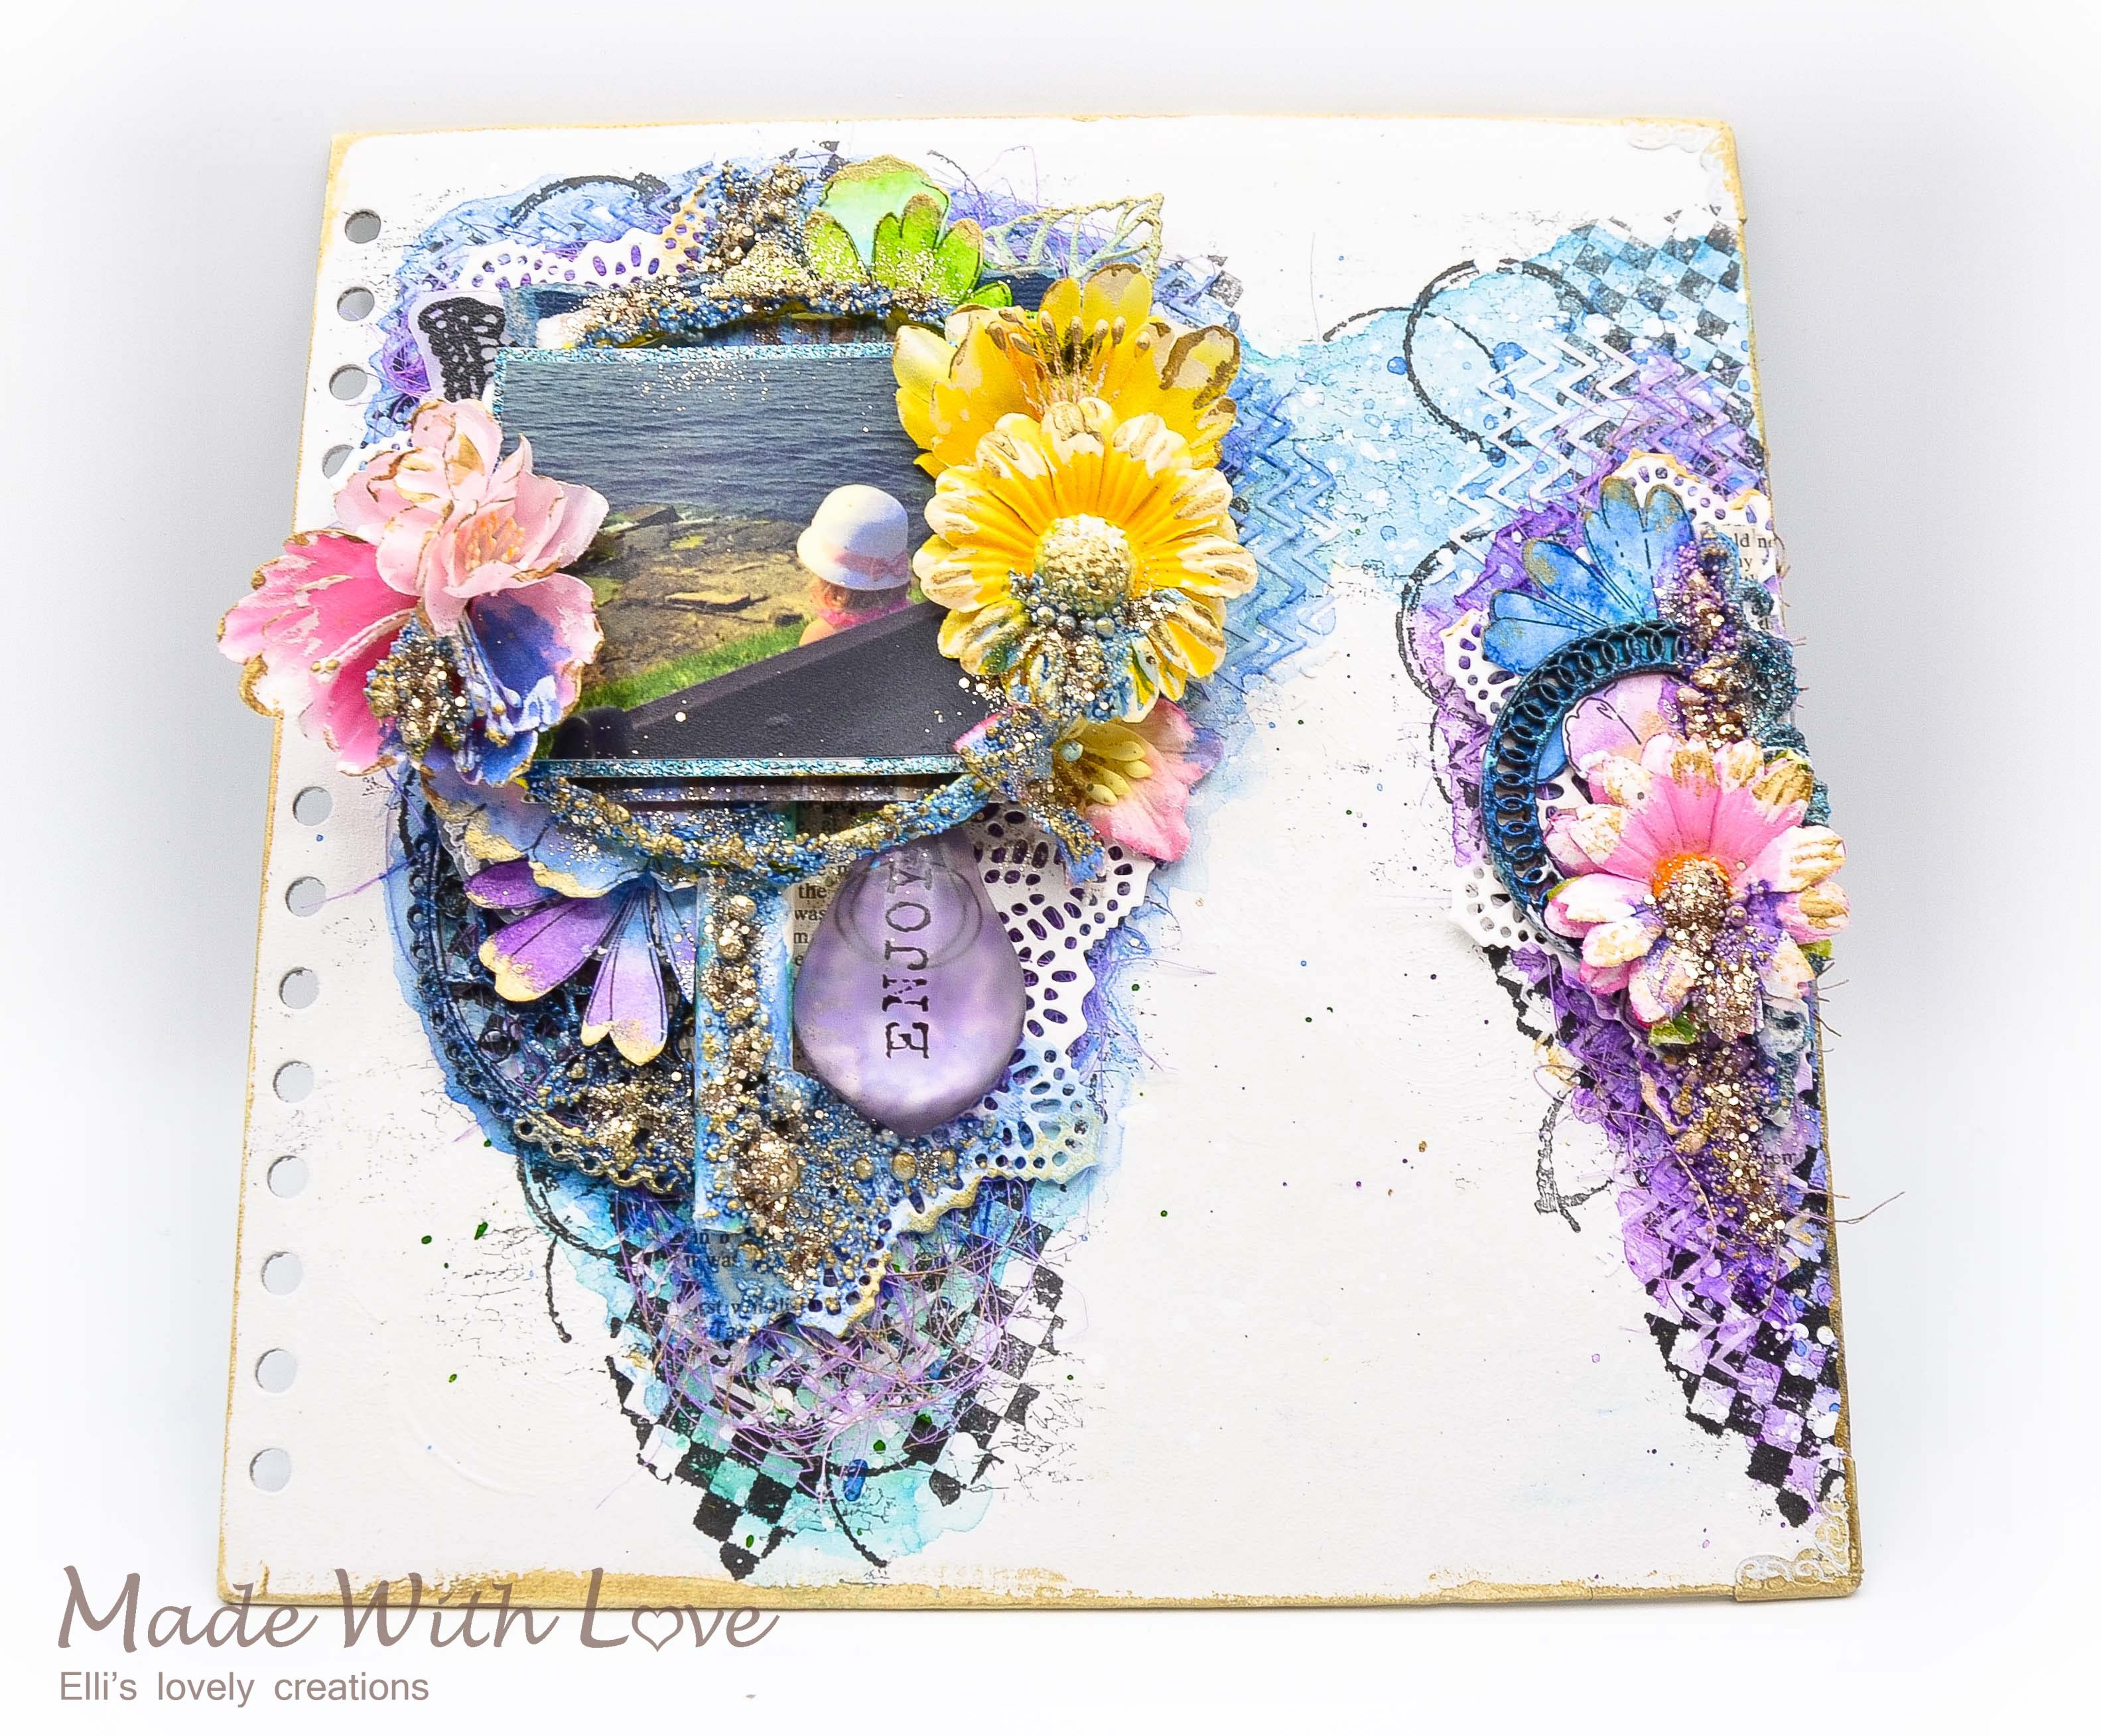 Mixed Media Summer Garden Wedding Album Cover Enjoy 004